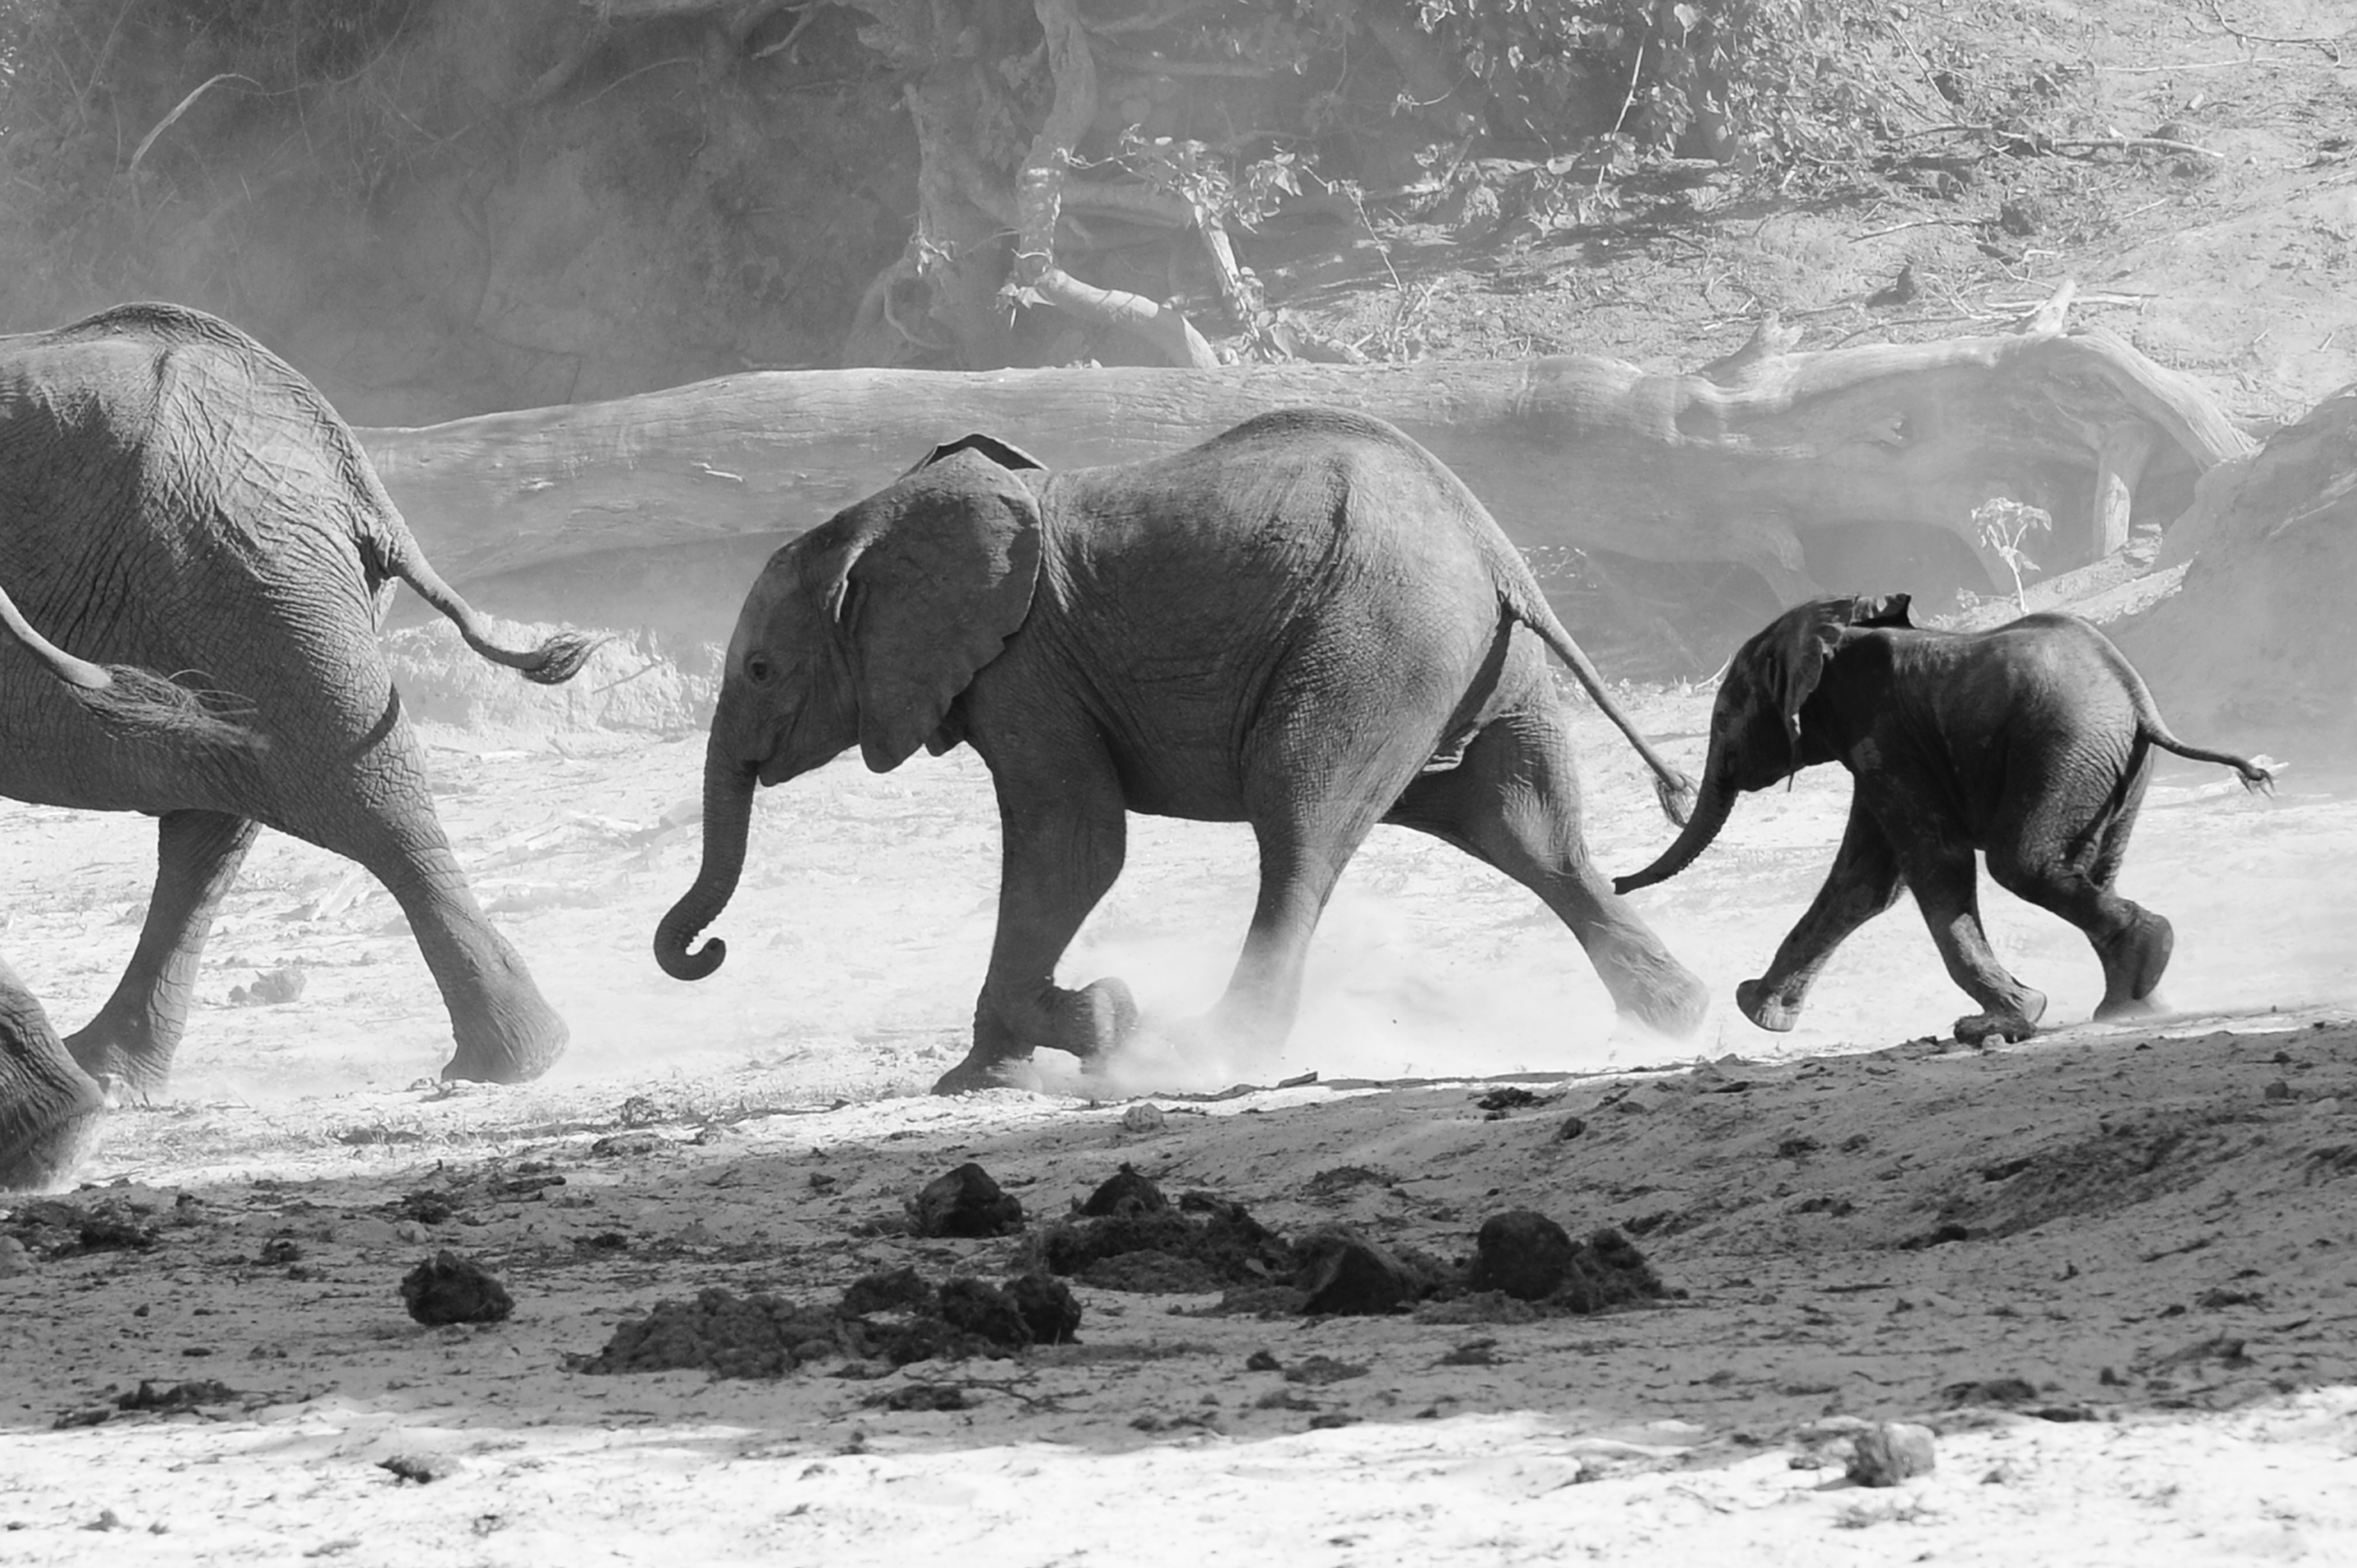 Elephants Running, Botswana Chobe River ©Johannes Ratermann